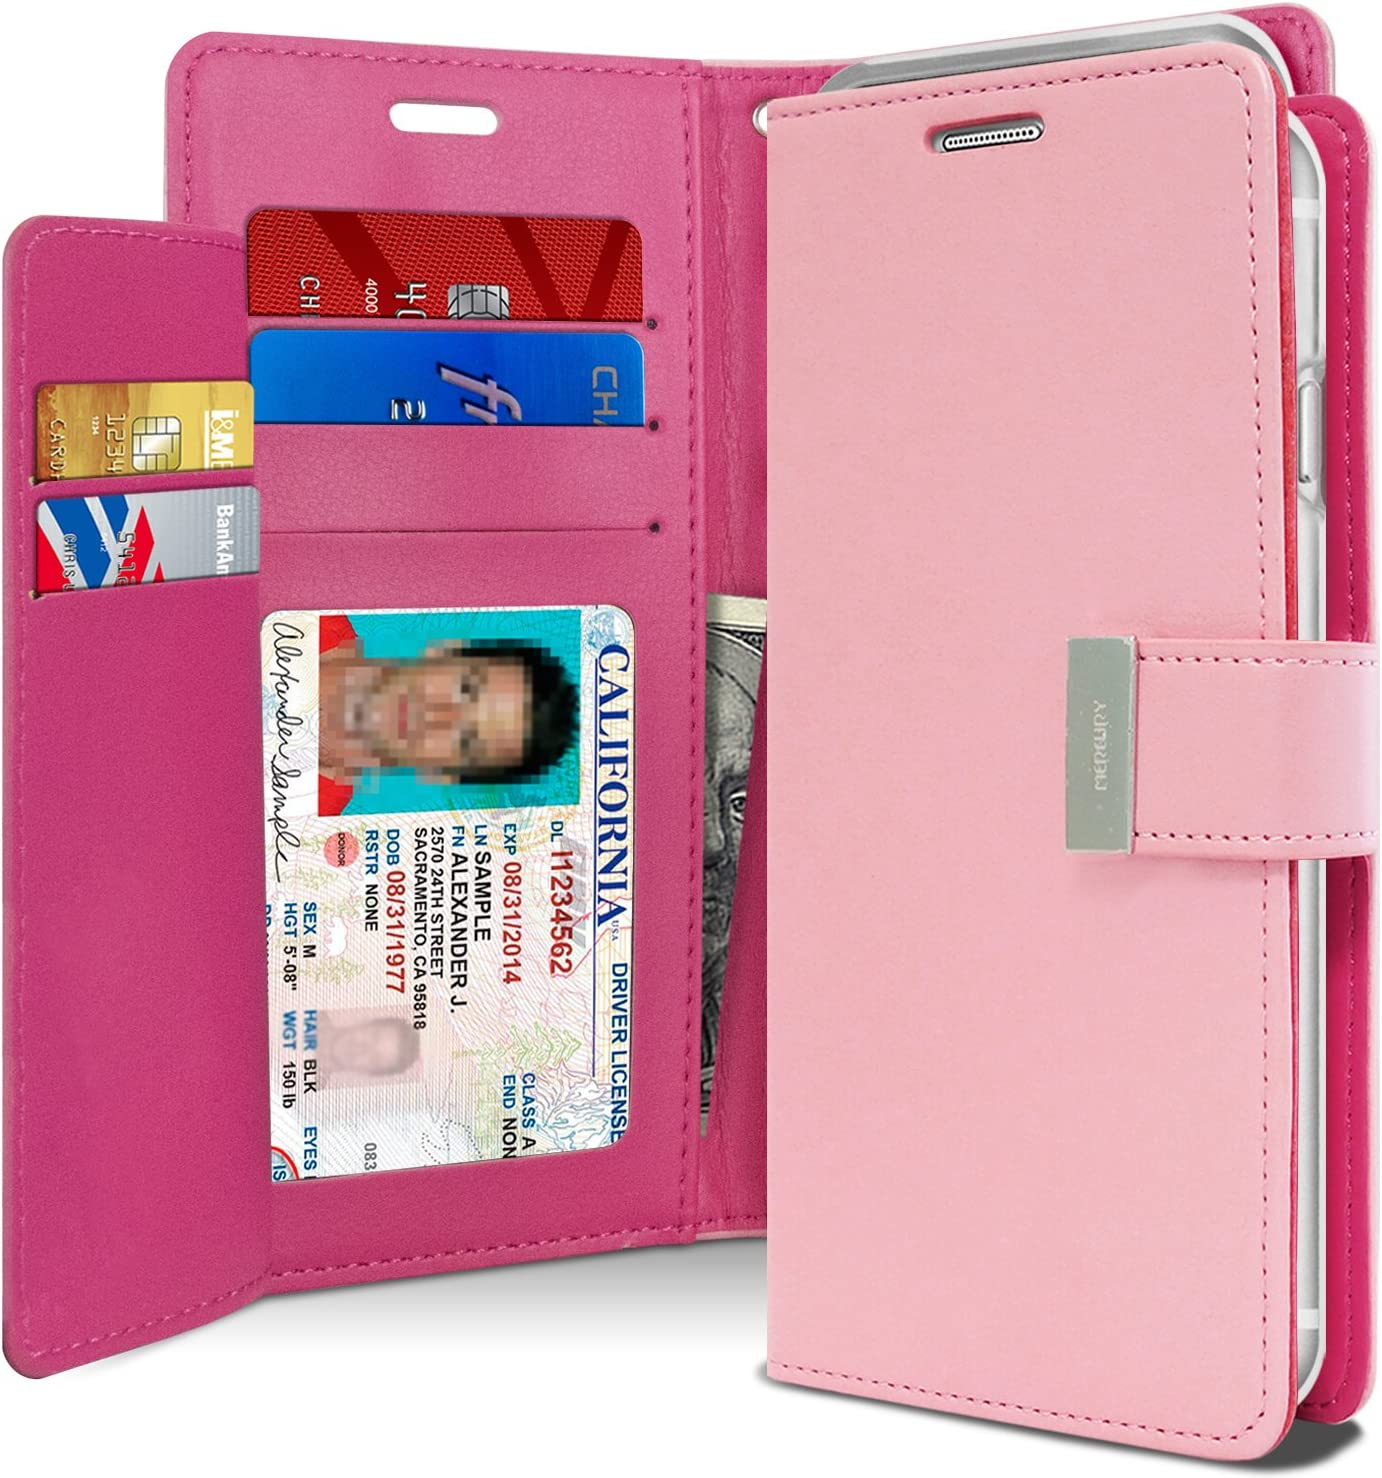 Goospery Rich Wallet for Apple iPhone Xs Case (2018) iPhone X Case (2017) Extra Card Slots Leather Flip Cover (Pink) IPX-RIC-PNK